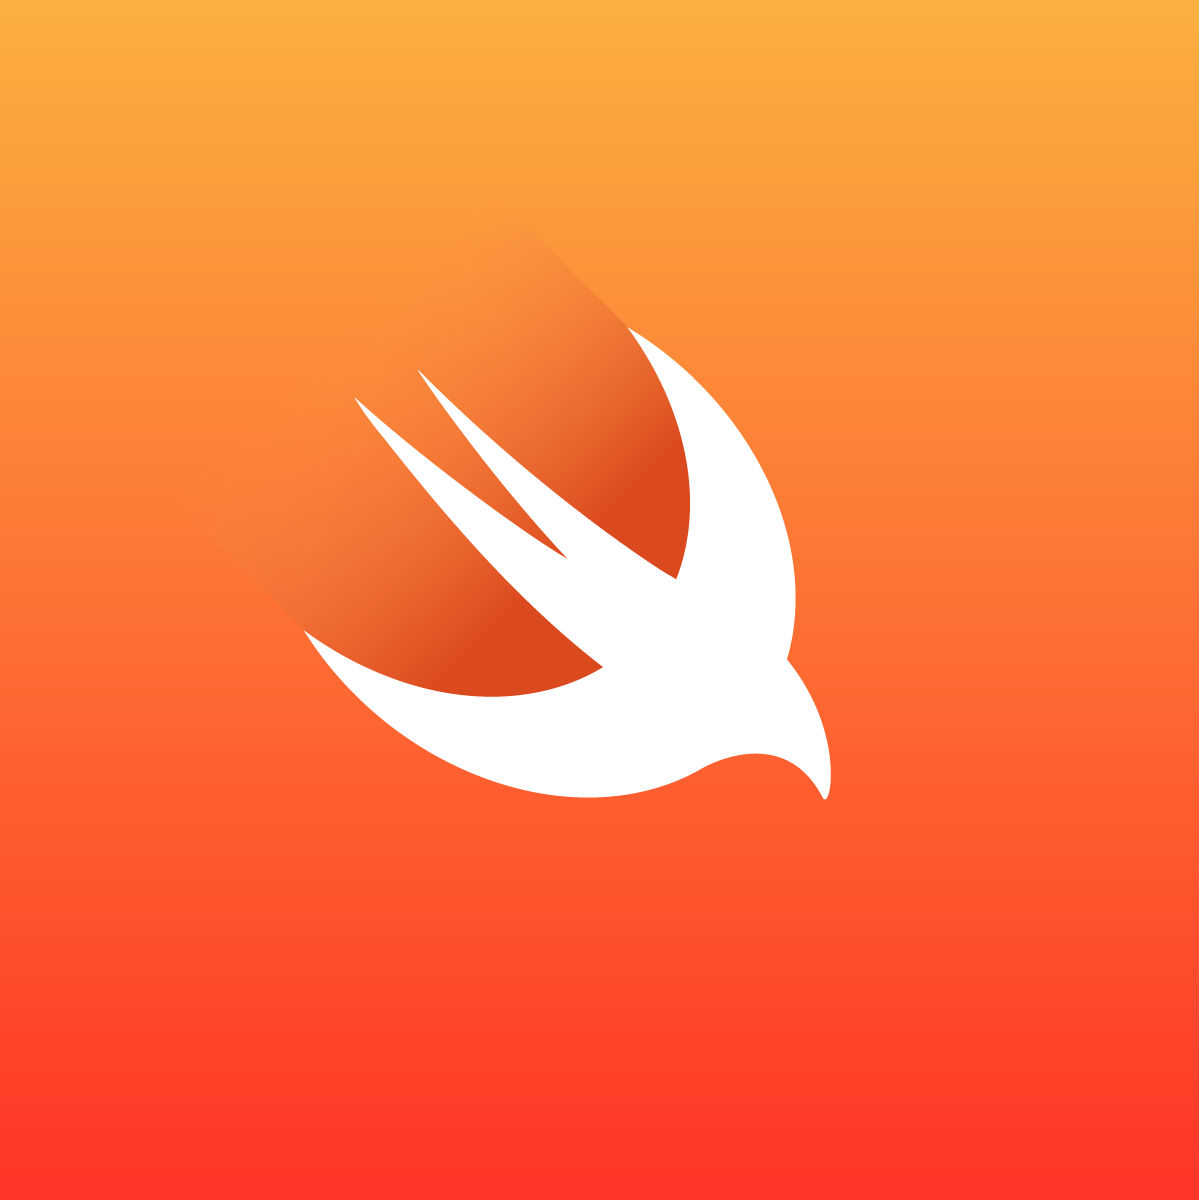 Get The Latest News And Helpful Tips On The Swift